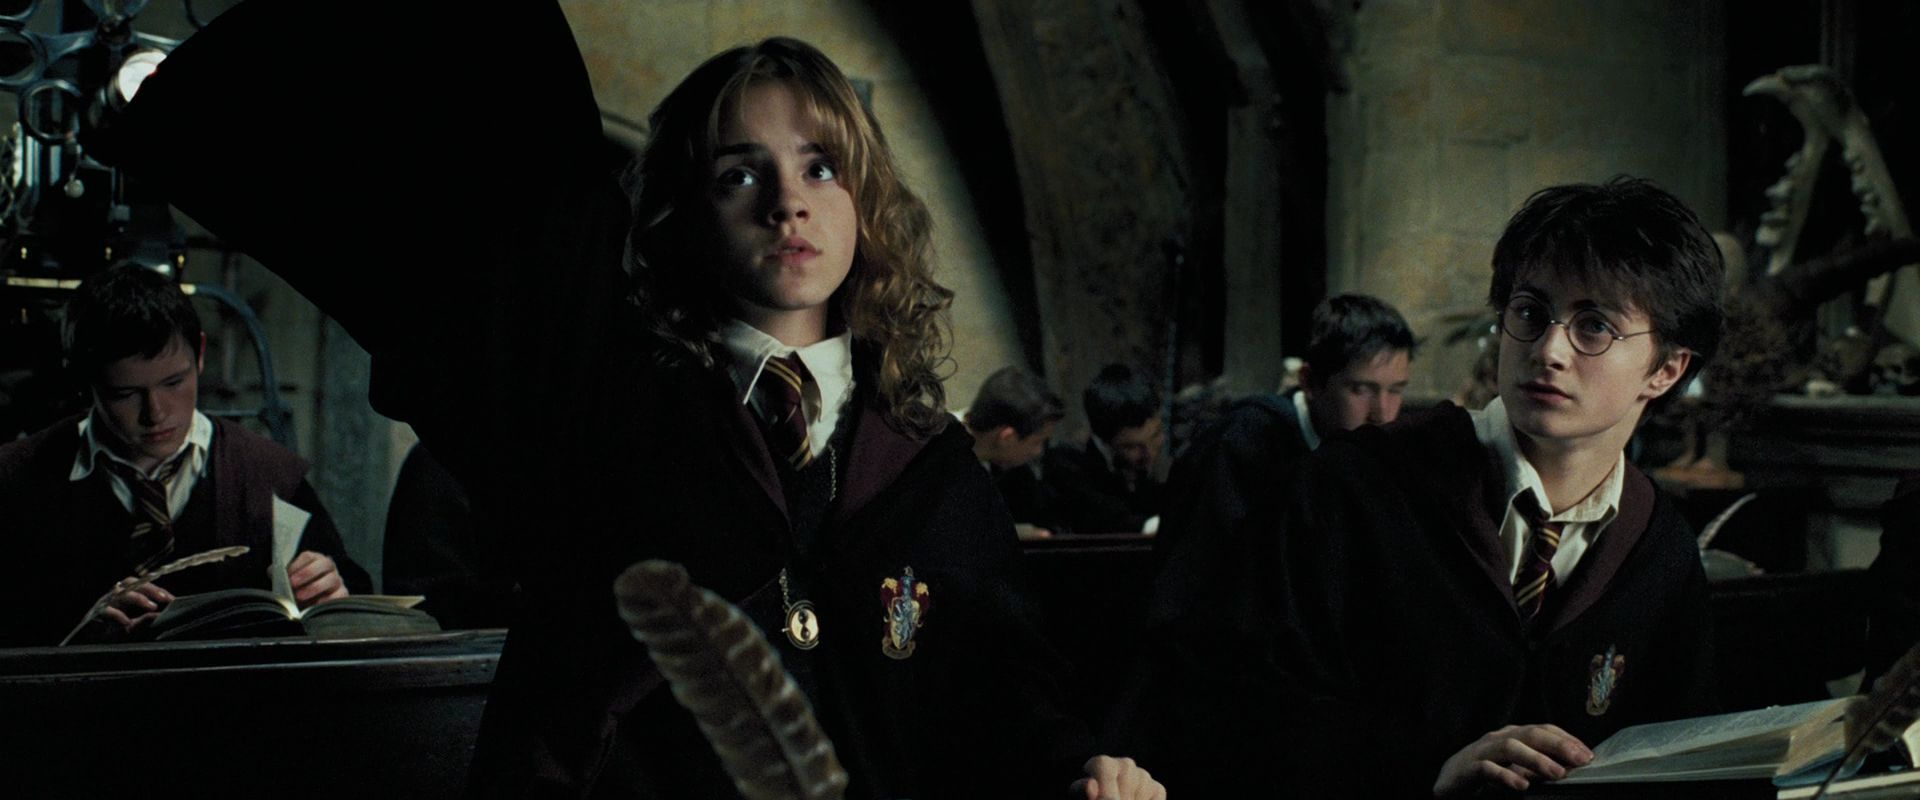 lacanian psychoanalytic criticism in harry potter In truth, psychoanalytic film theory has from its incipience been almost exclusively lacanian film theory according to lacan, the mirror stage occurs in infants between six and eighteen months of age, when they misrecognize themselves while looking in the mirror.